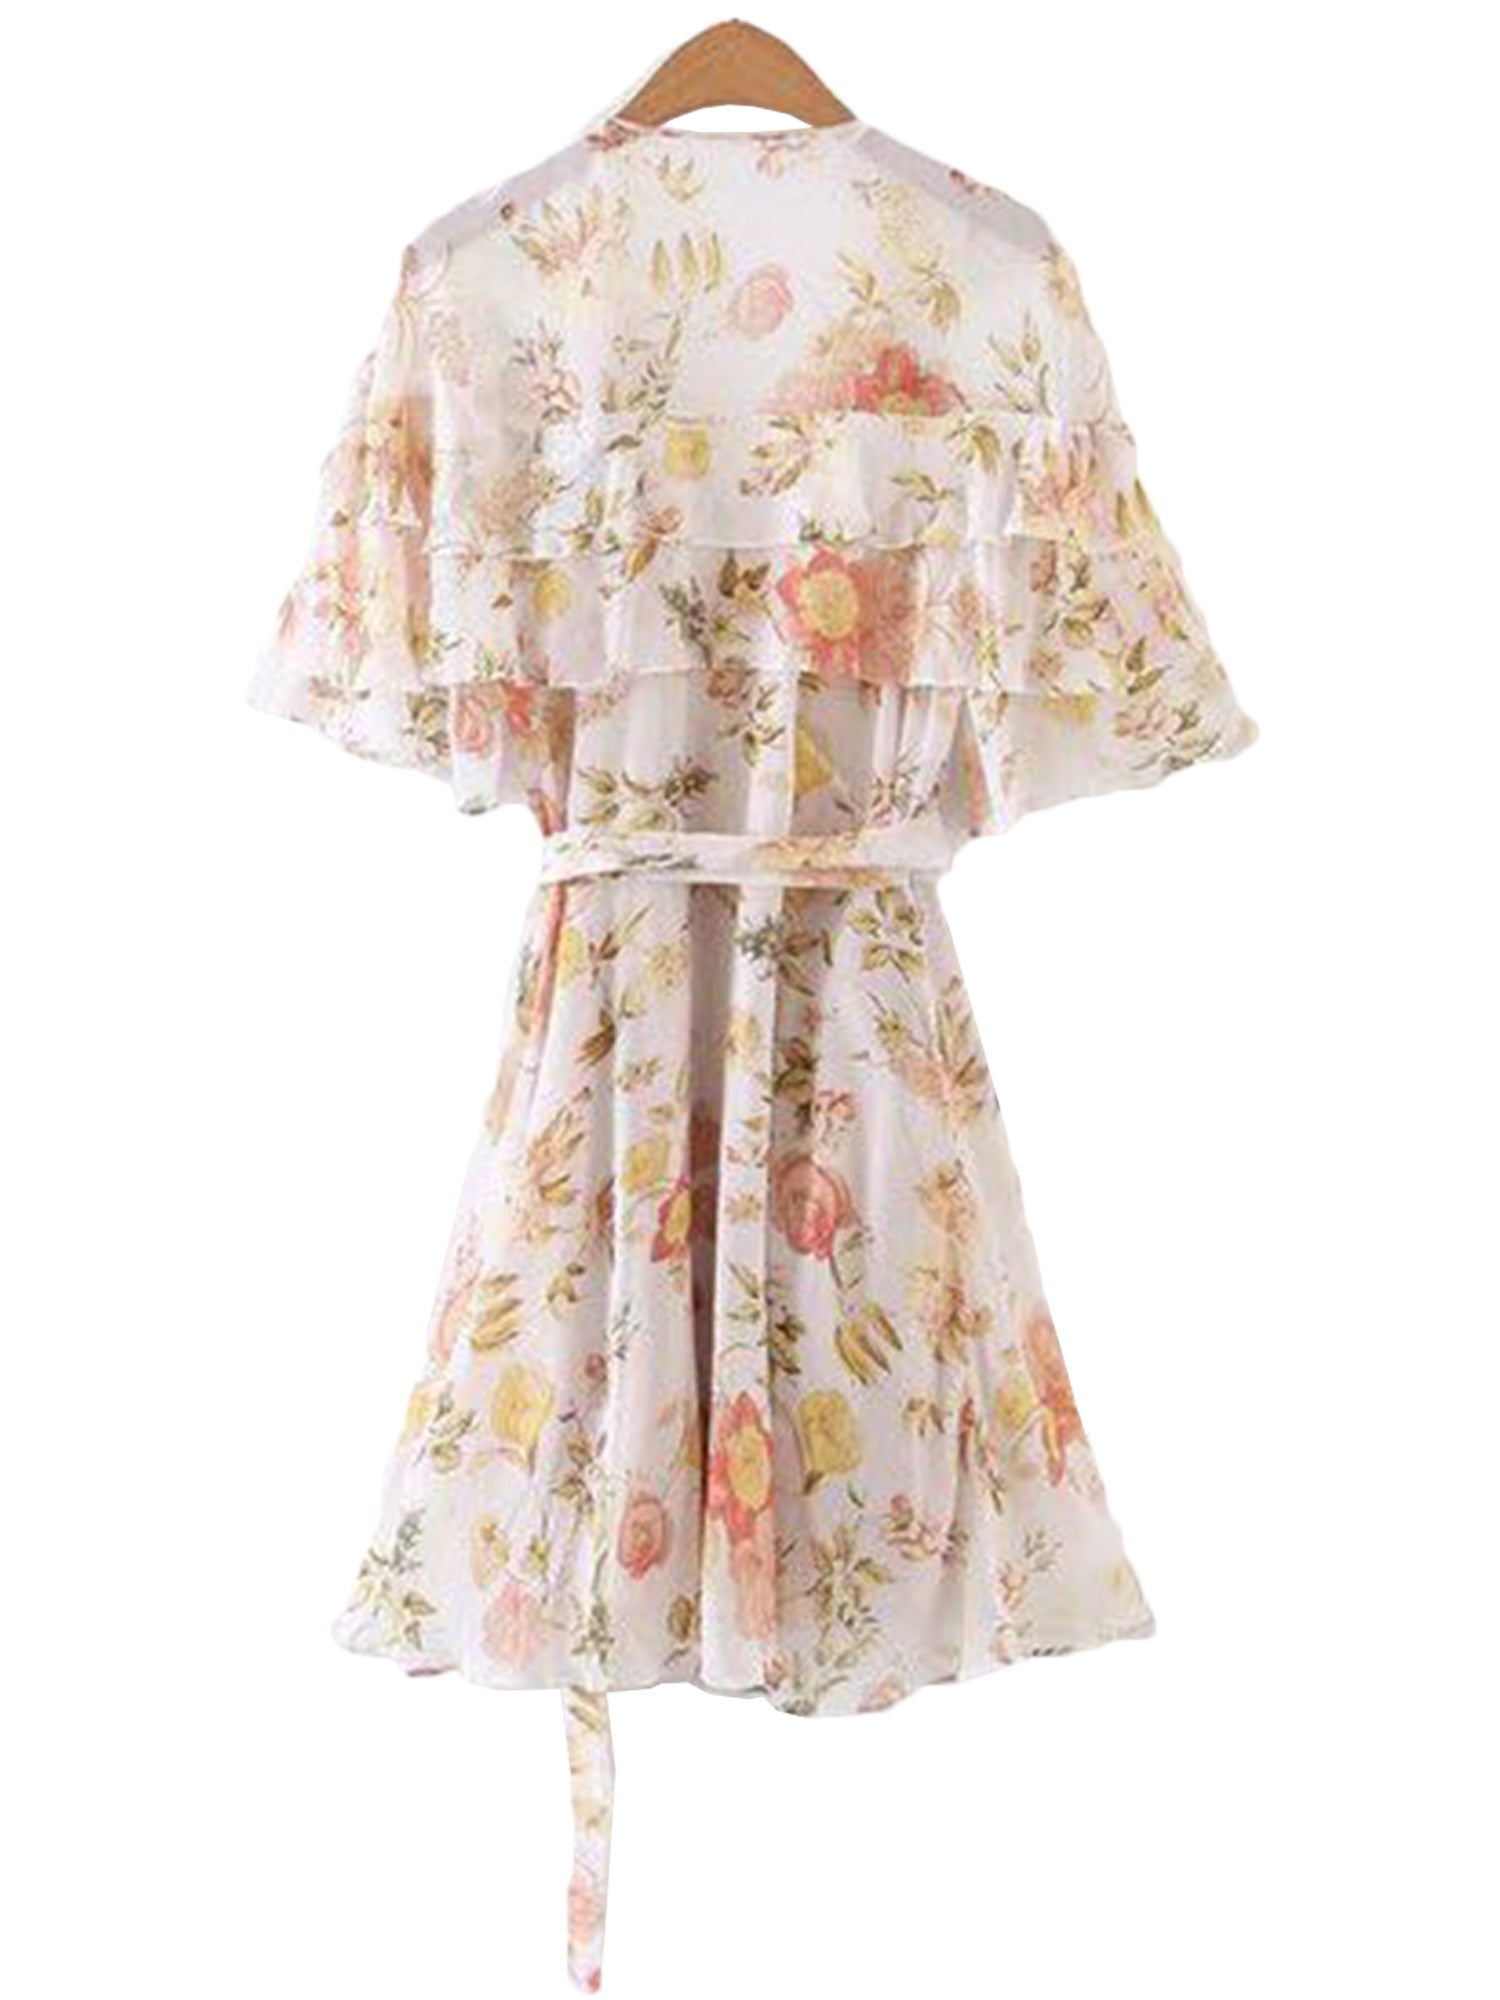 'Sylvia' Ruffle Floral Dress